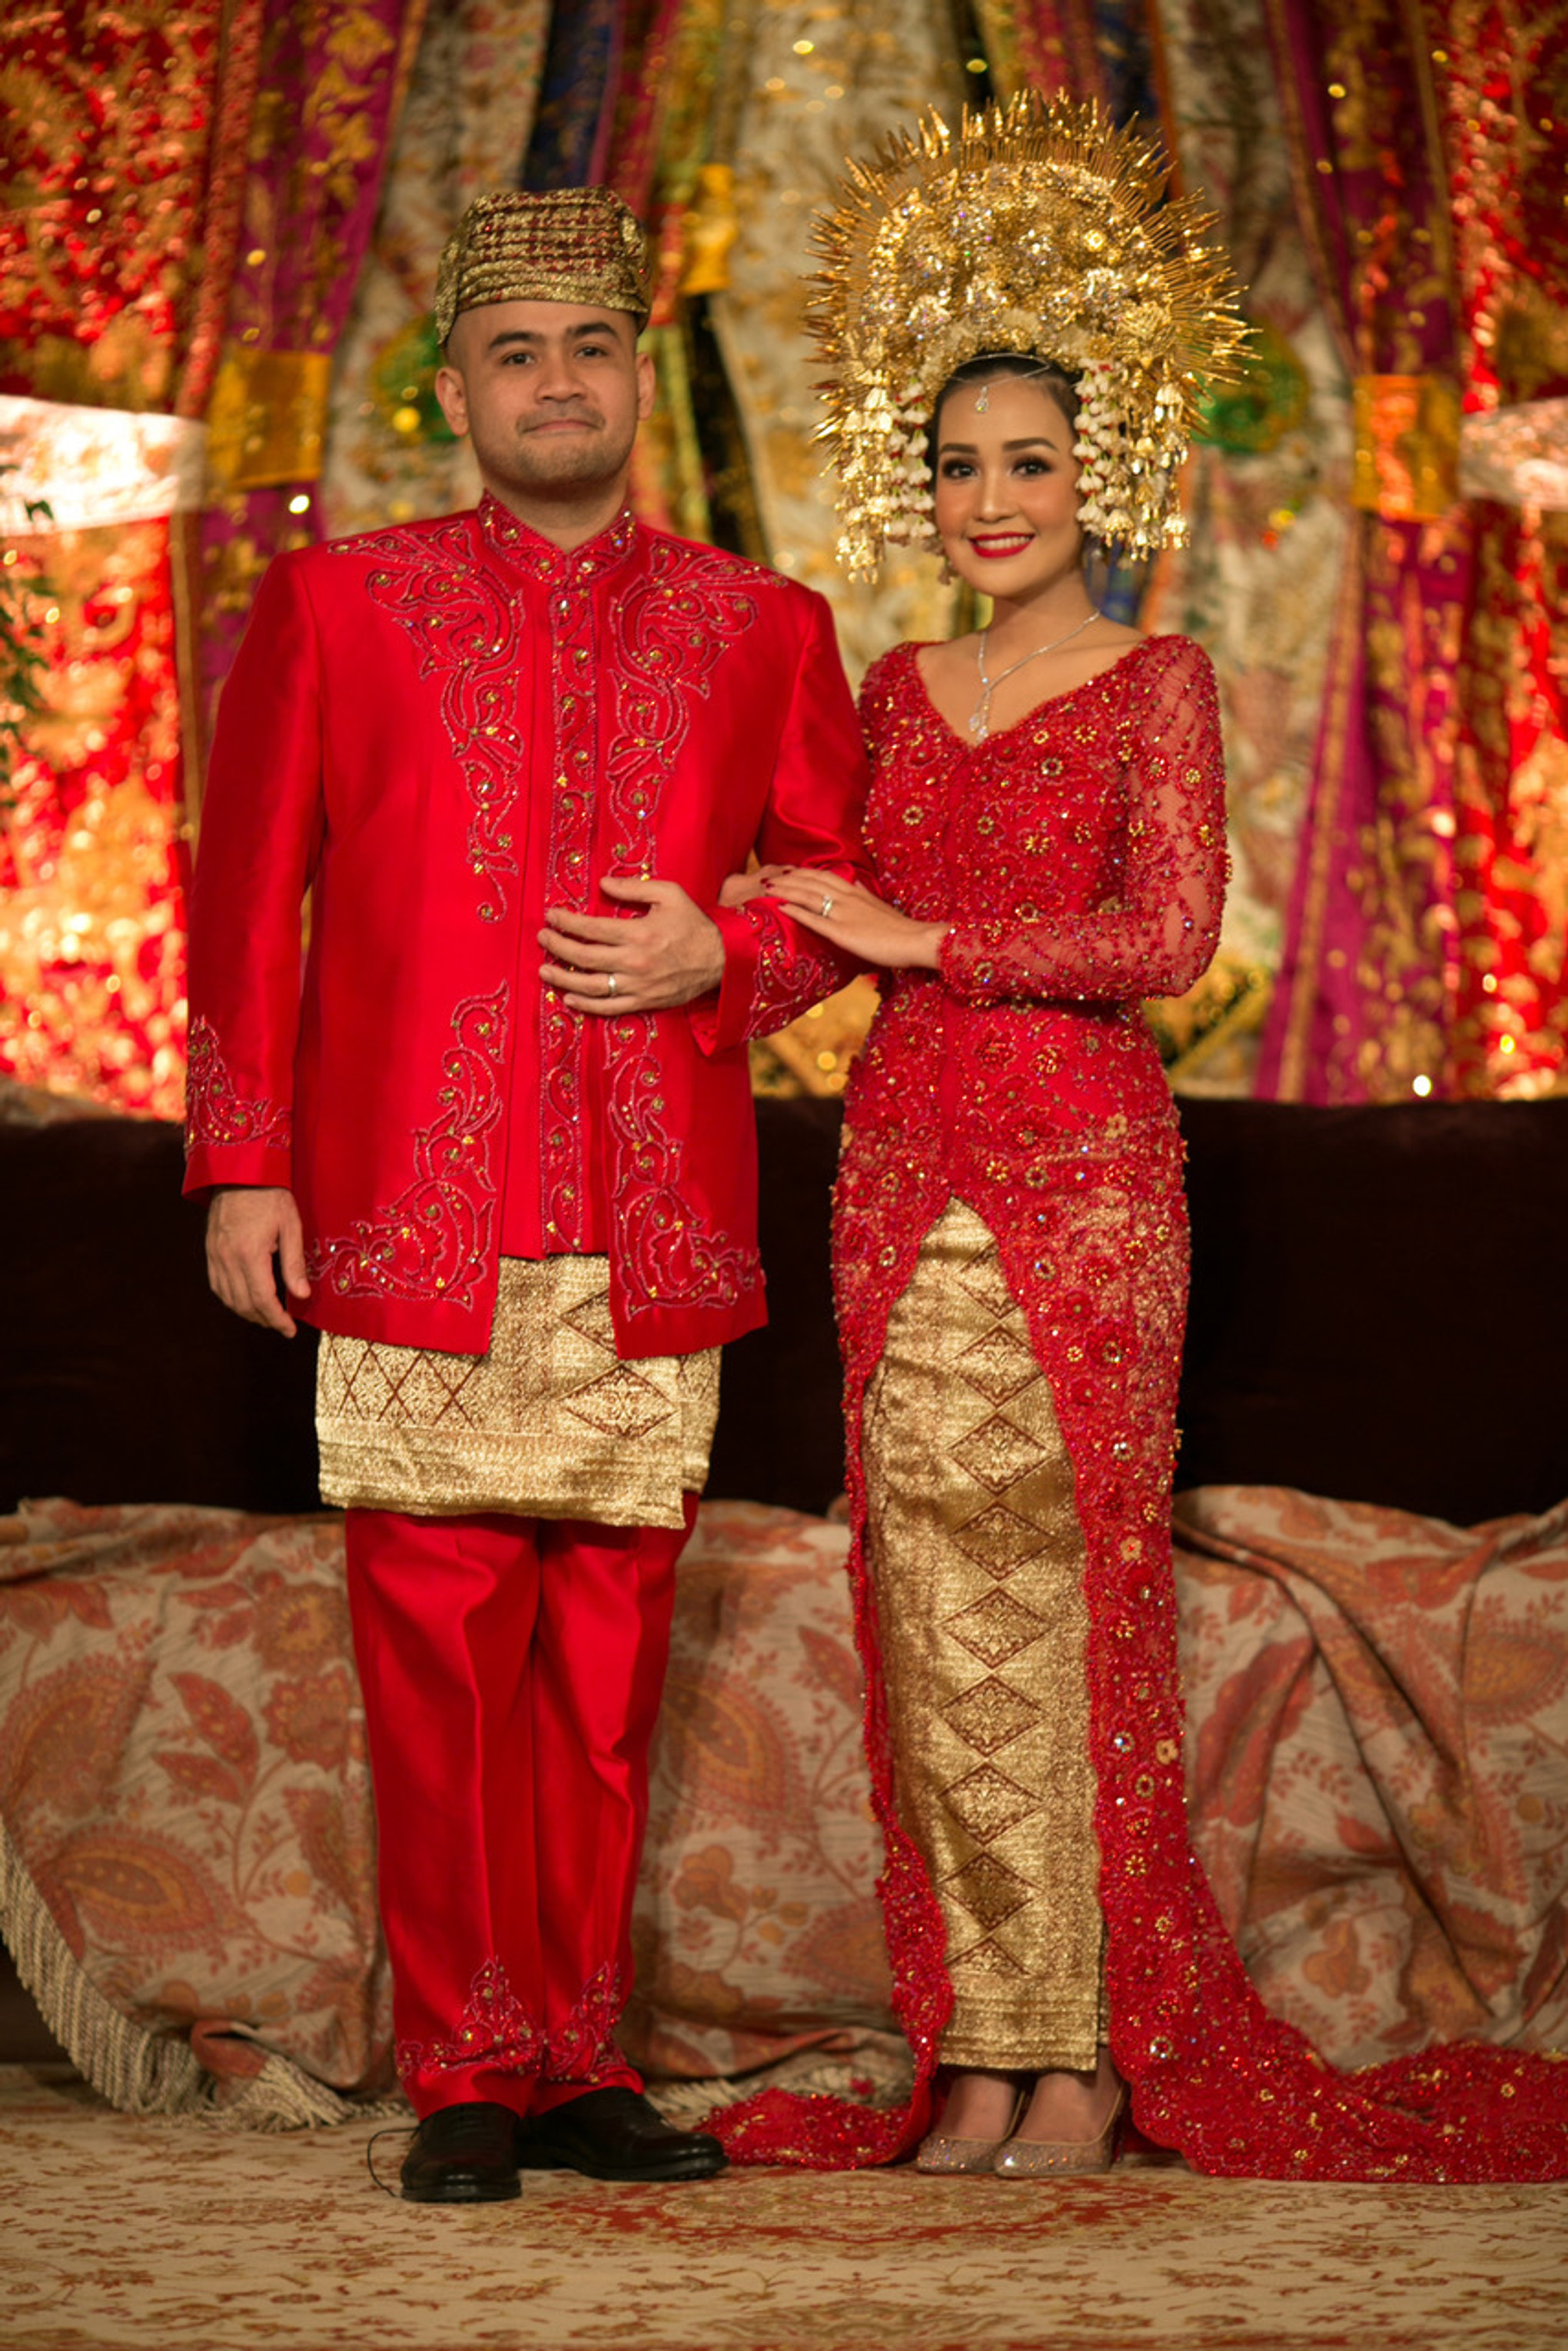 A Traditional Minang Wedding with Shades of Red and Gold